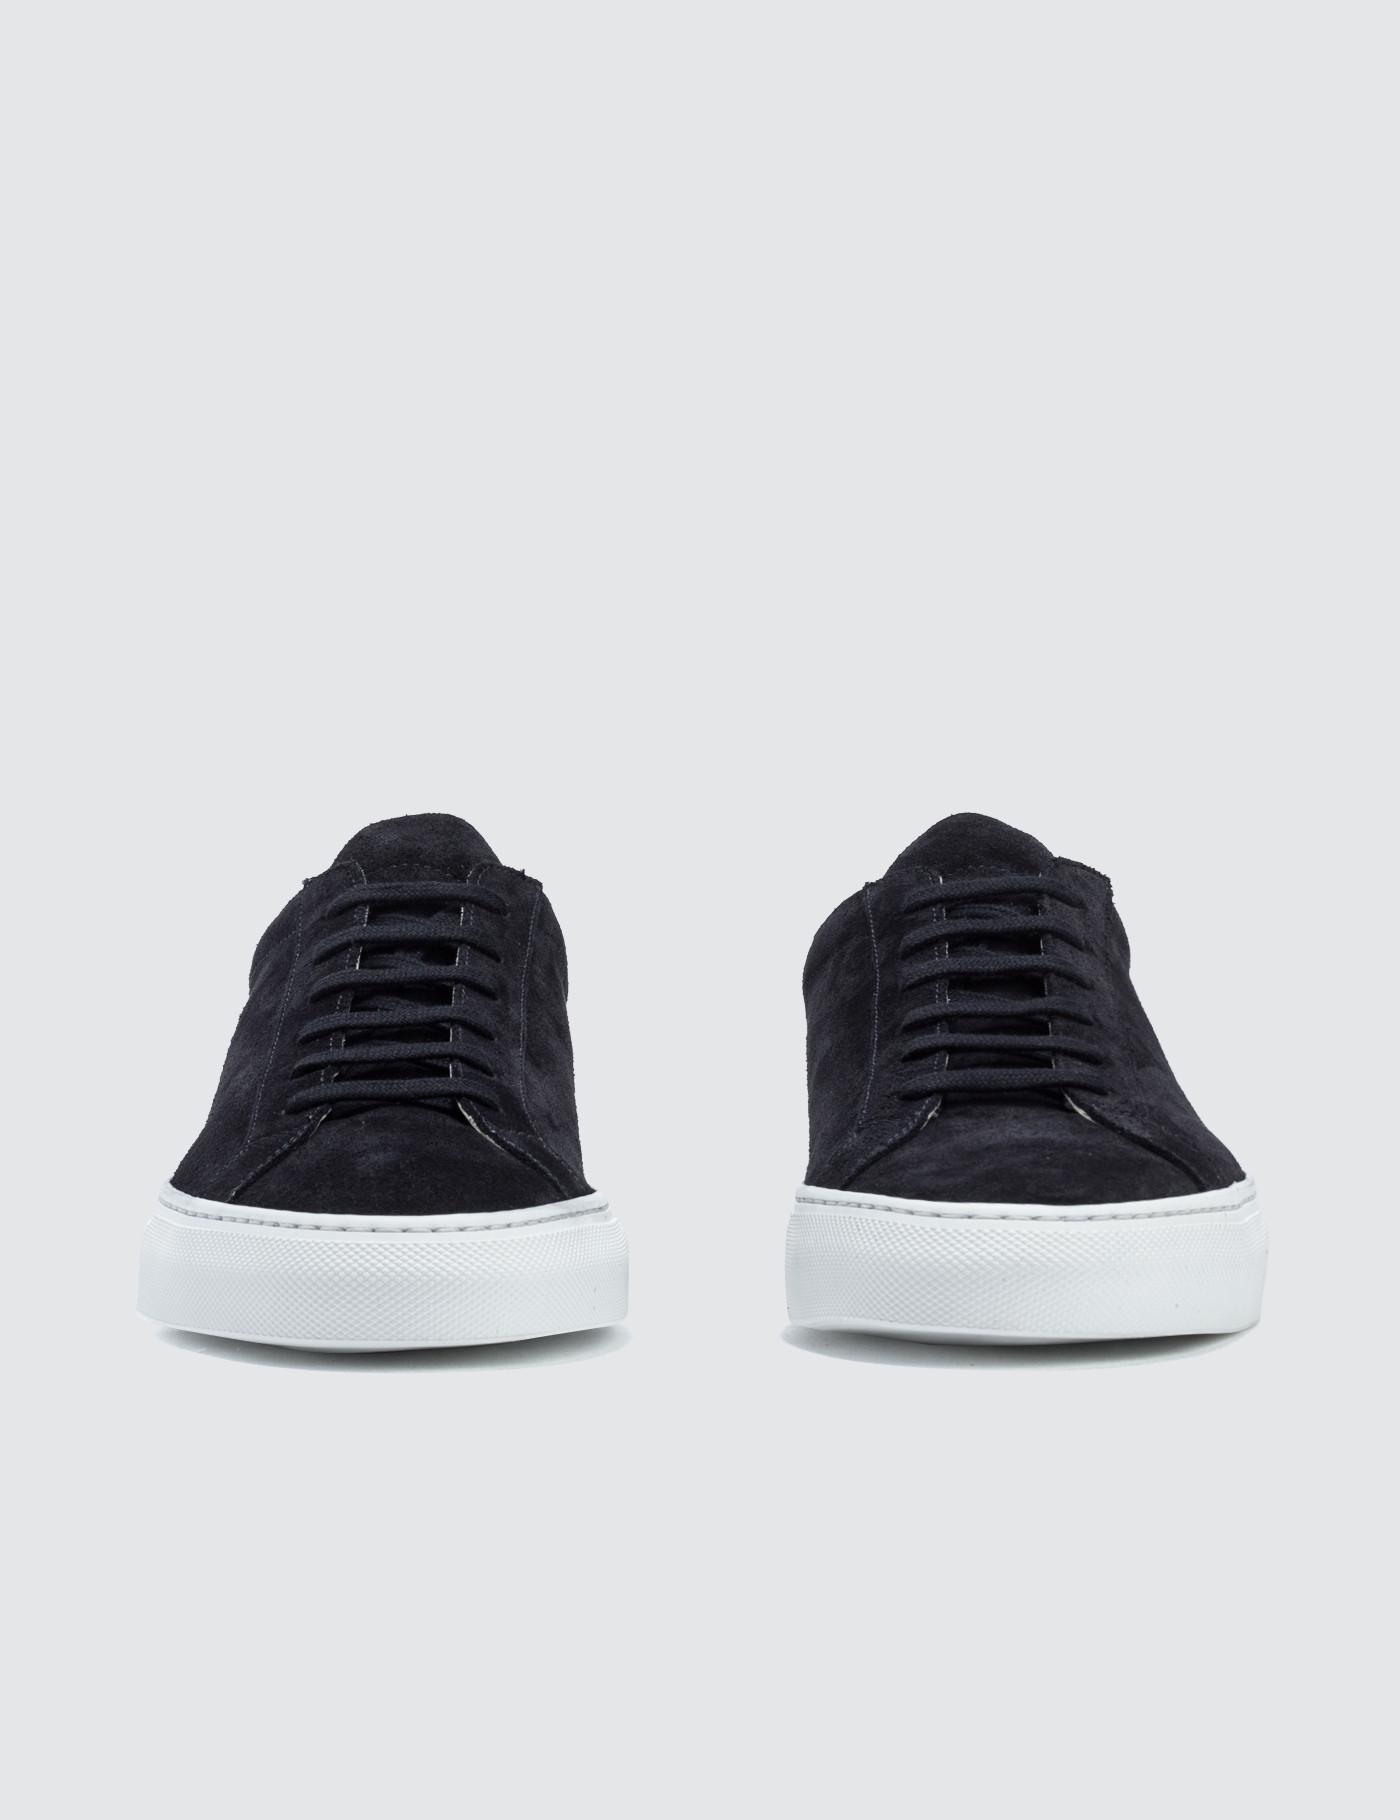 3a75735104fd Lyst - Common Projects Original Achilles Low Suede Sneaker in Black for Men  - Save 61%